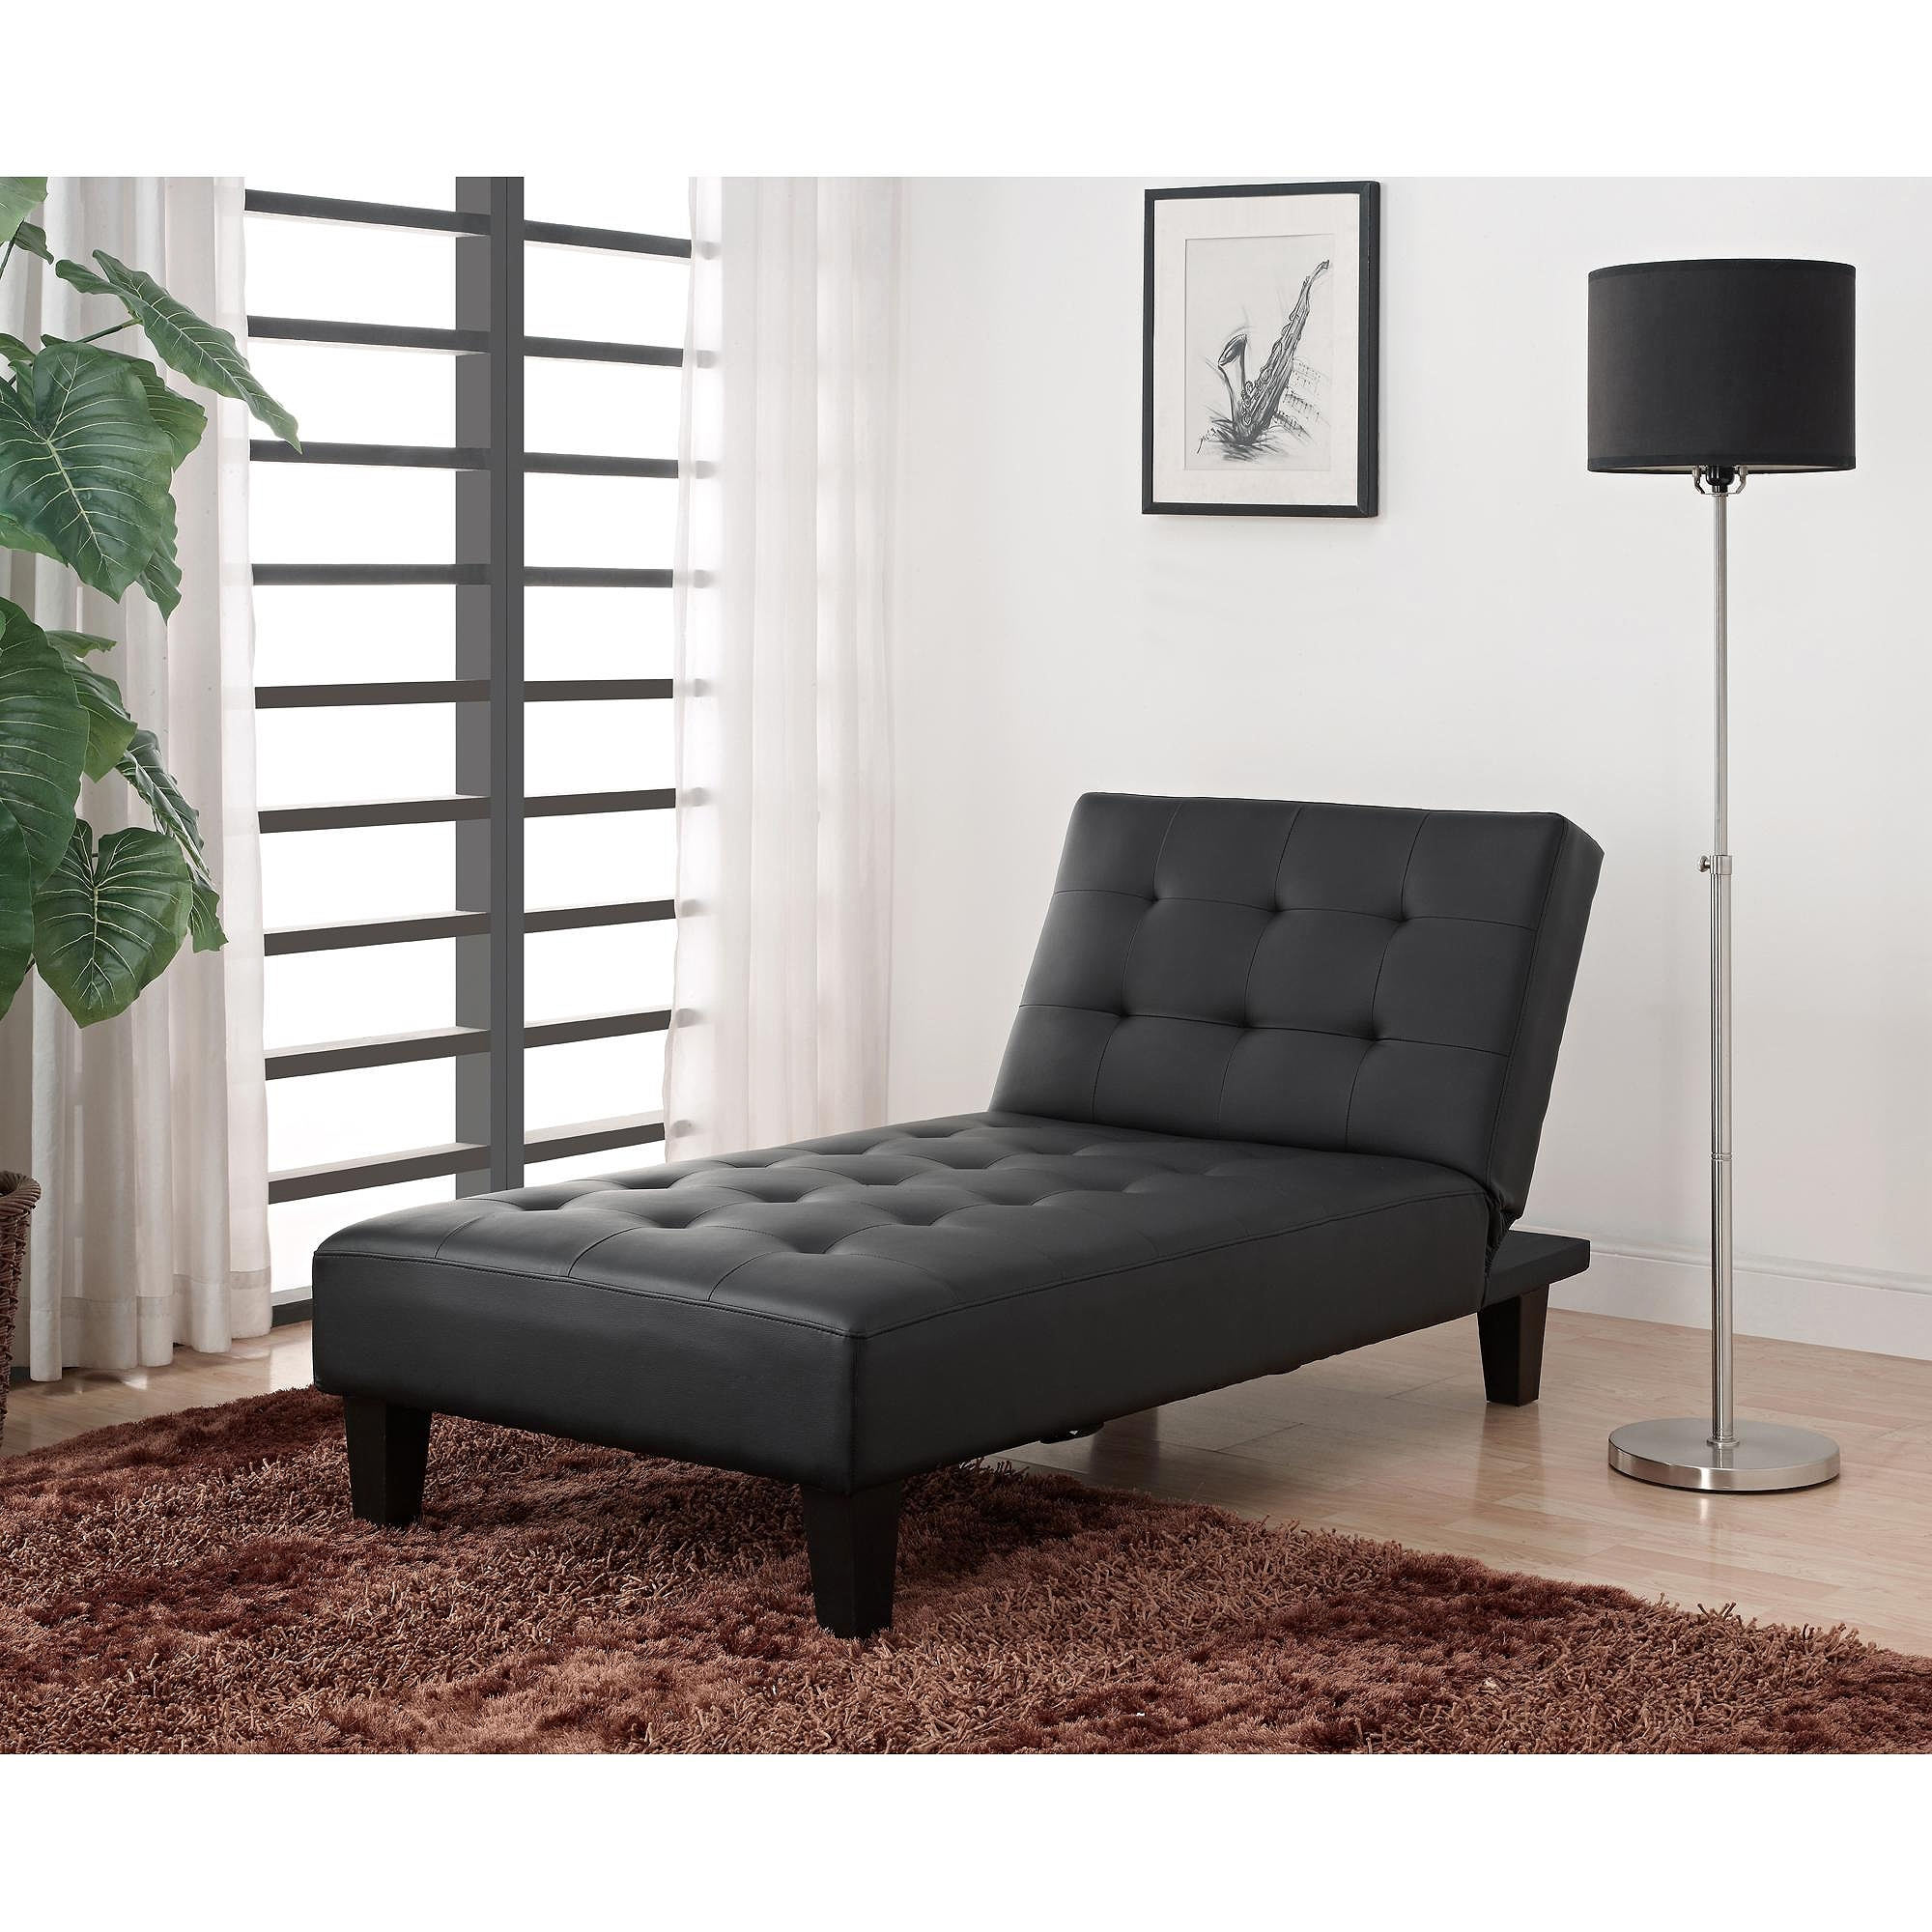 Preferred Julia Futon Chaise Lounger, Black – Walmart Intended For Futon Chaise Lounges (View 4 of 15)